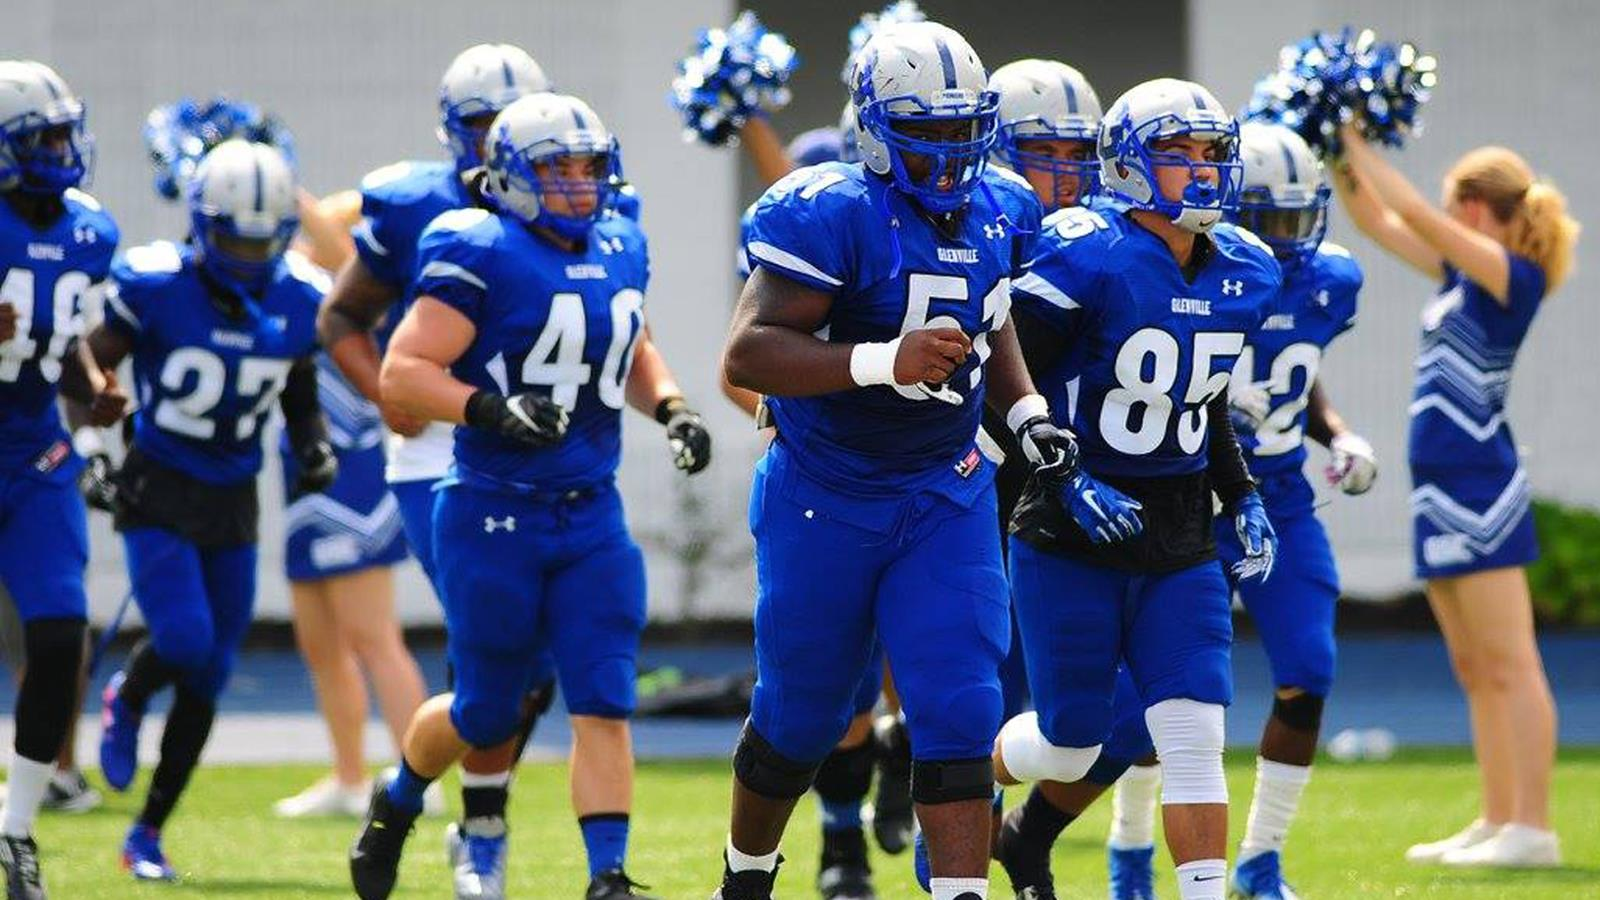 Glenville State Pioneers